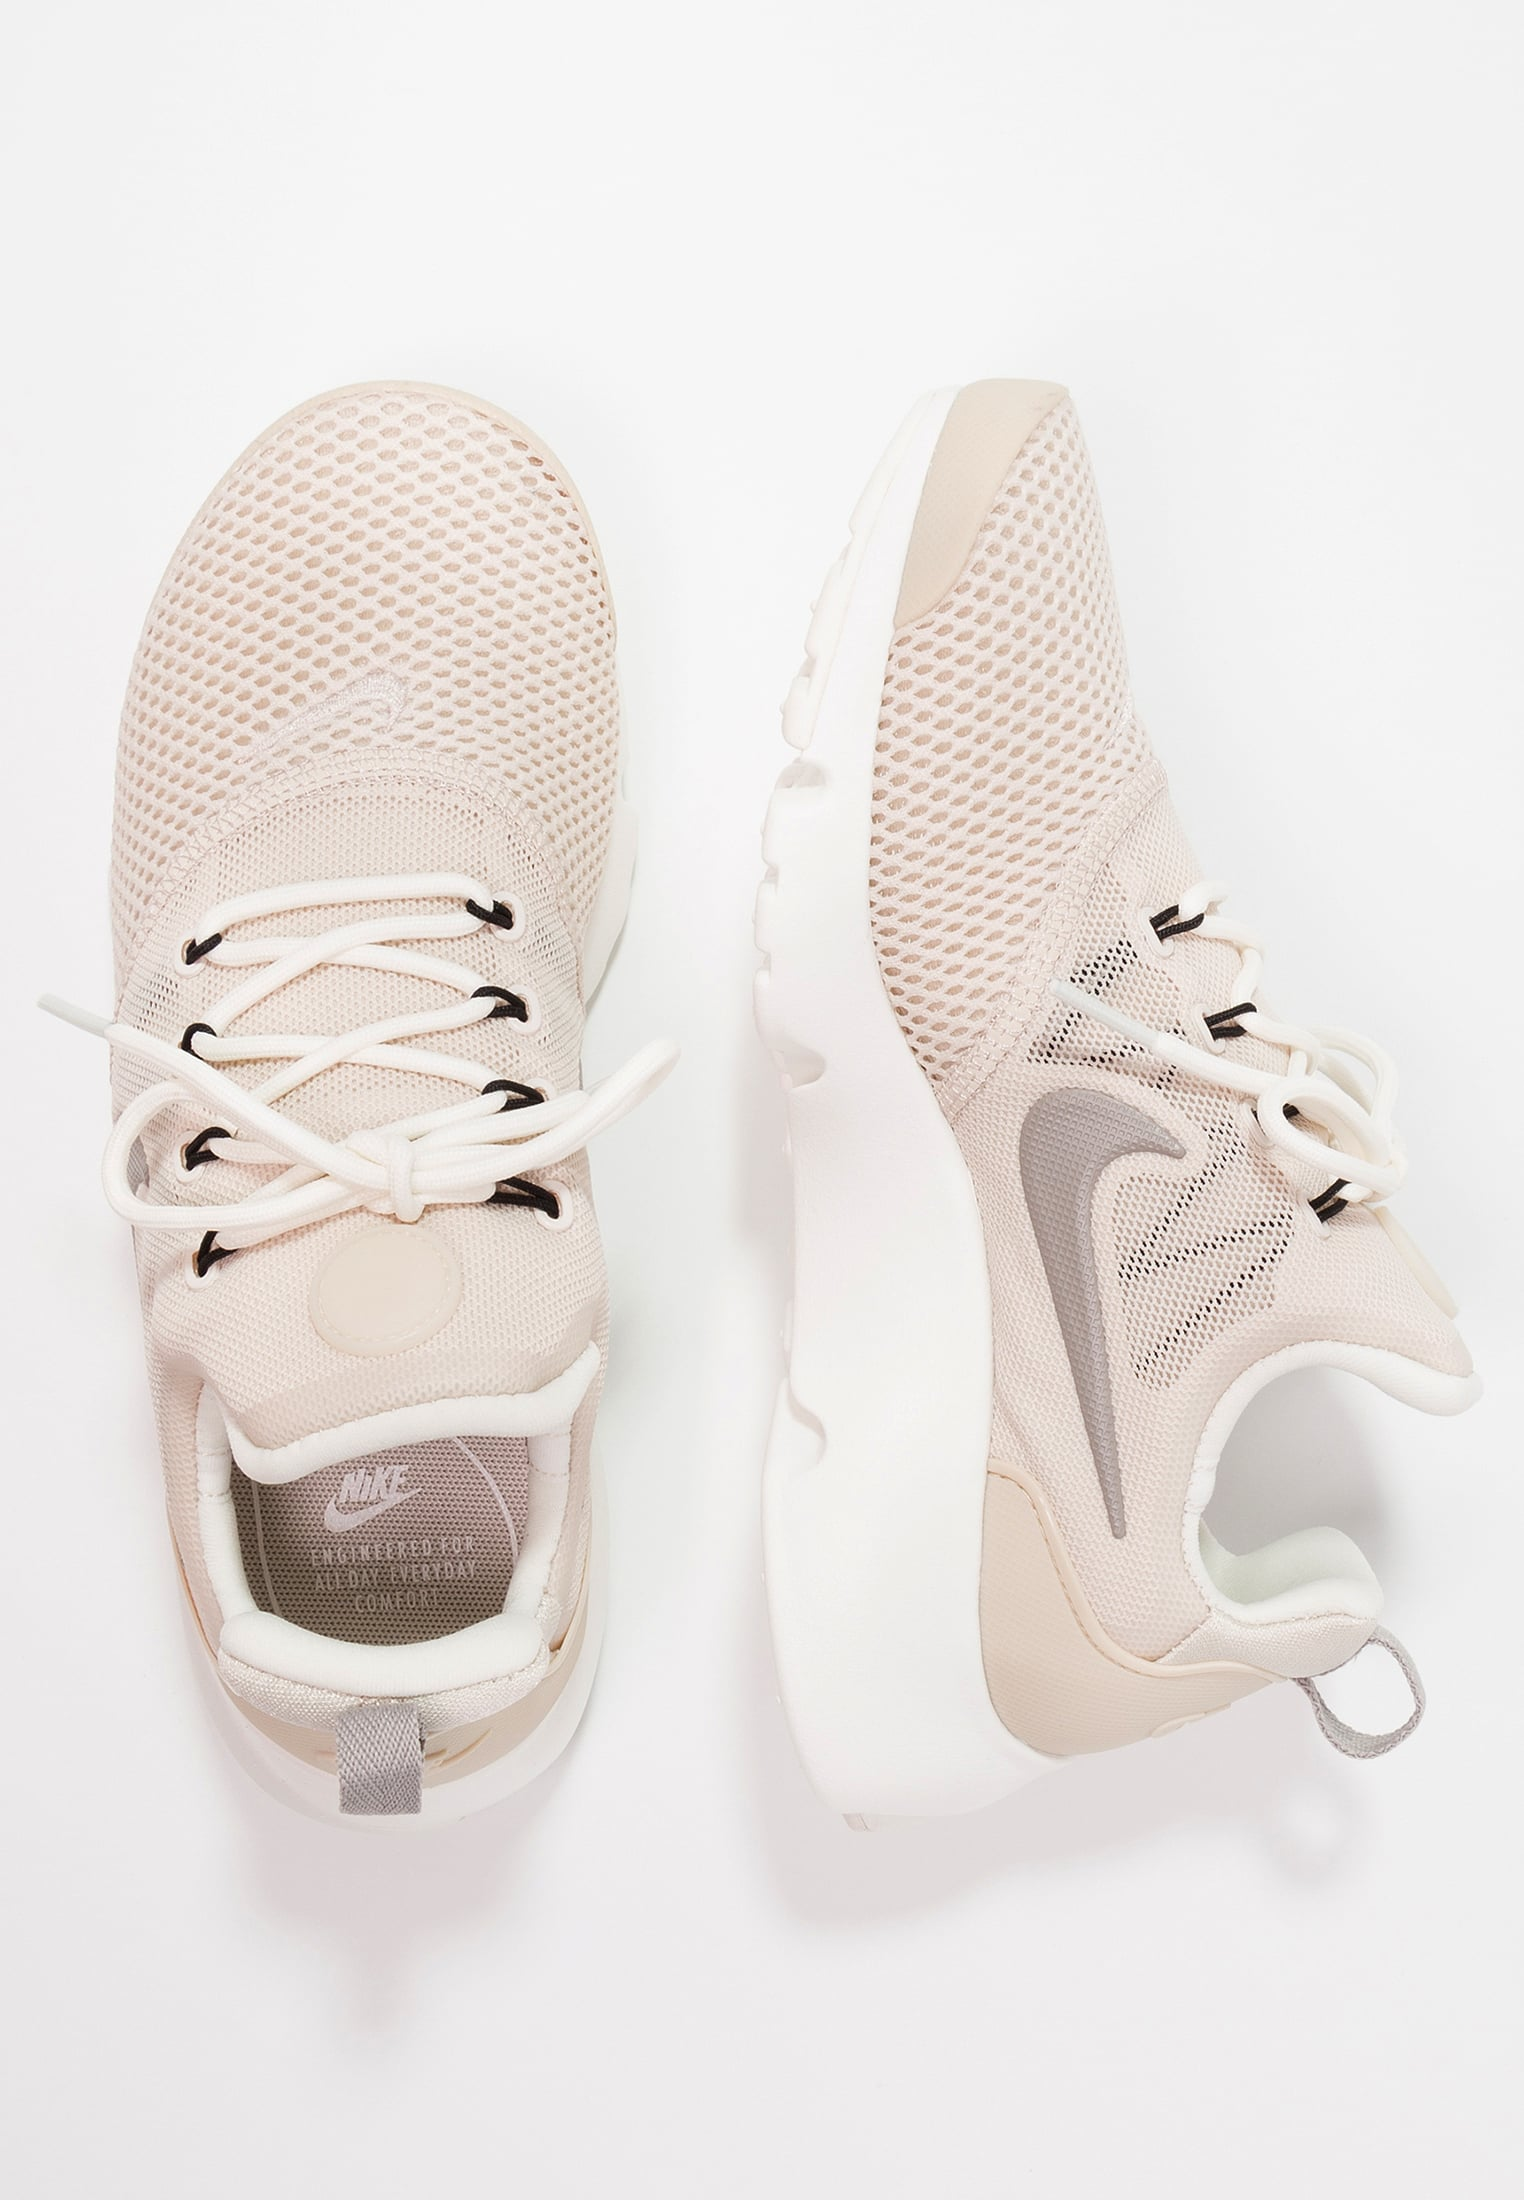 Nike Rose Basket Fly Basket Presto Nike Presto Rose Basket Fly OkXPiTZu